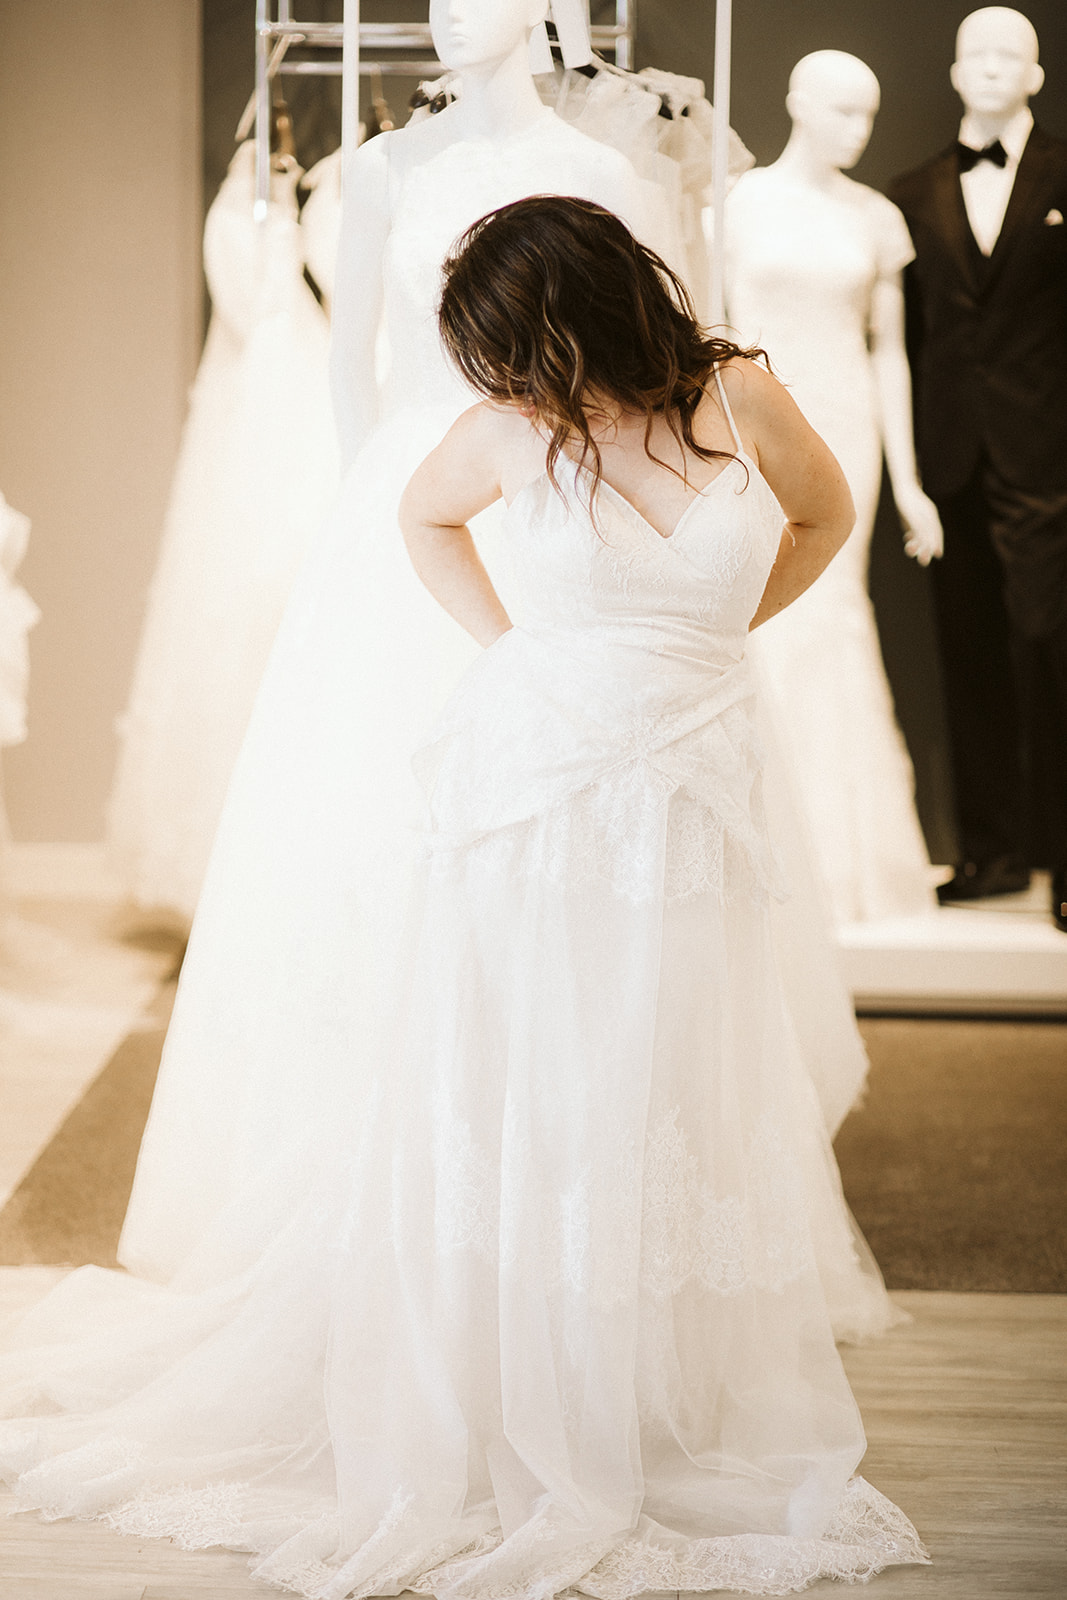 A woman with long brown hair begins to remove the outer dress (a sleeveless v-neck) to reveal a spaghetti-strap gown underneath at David's Bridal